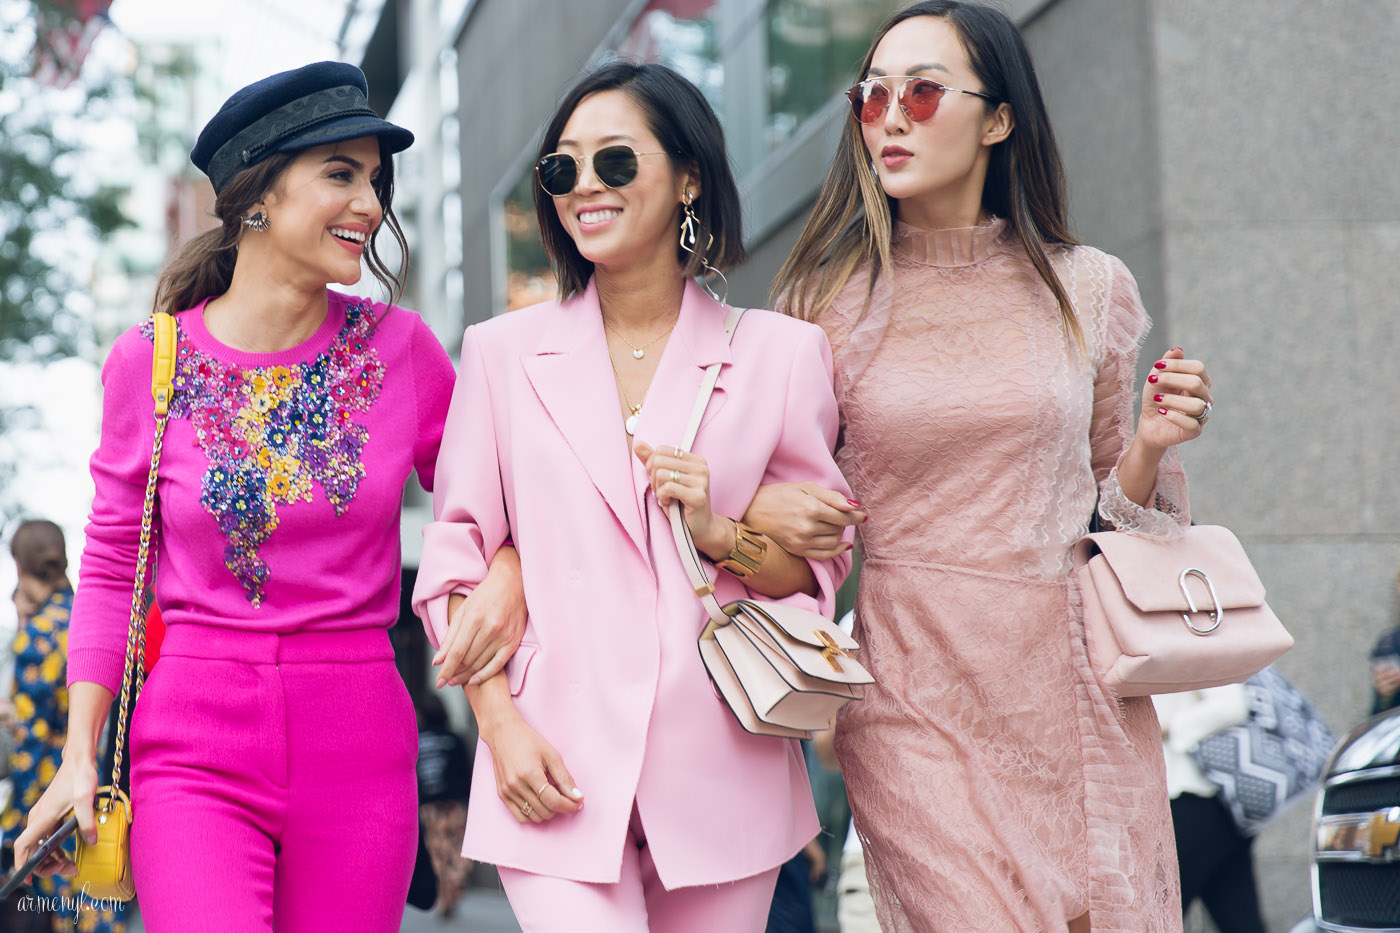 The best pink pantsuits street style looks at New York Fashion Week SS 2018 photo by street style photographer Armenyl